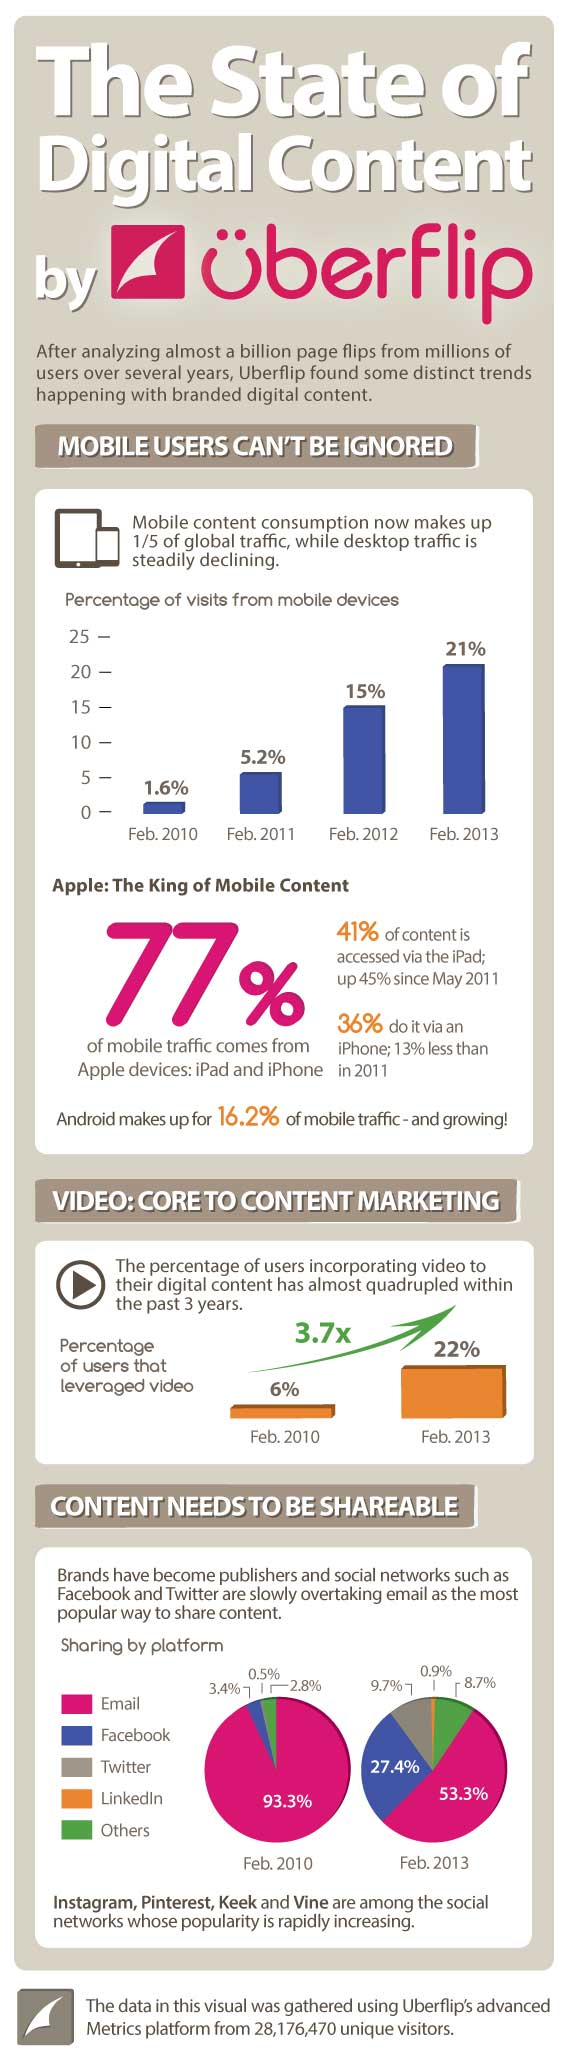 the state of digital content infographic